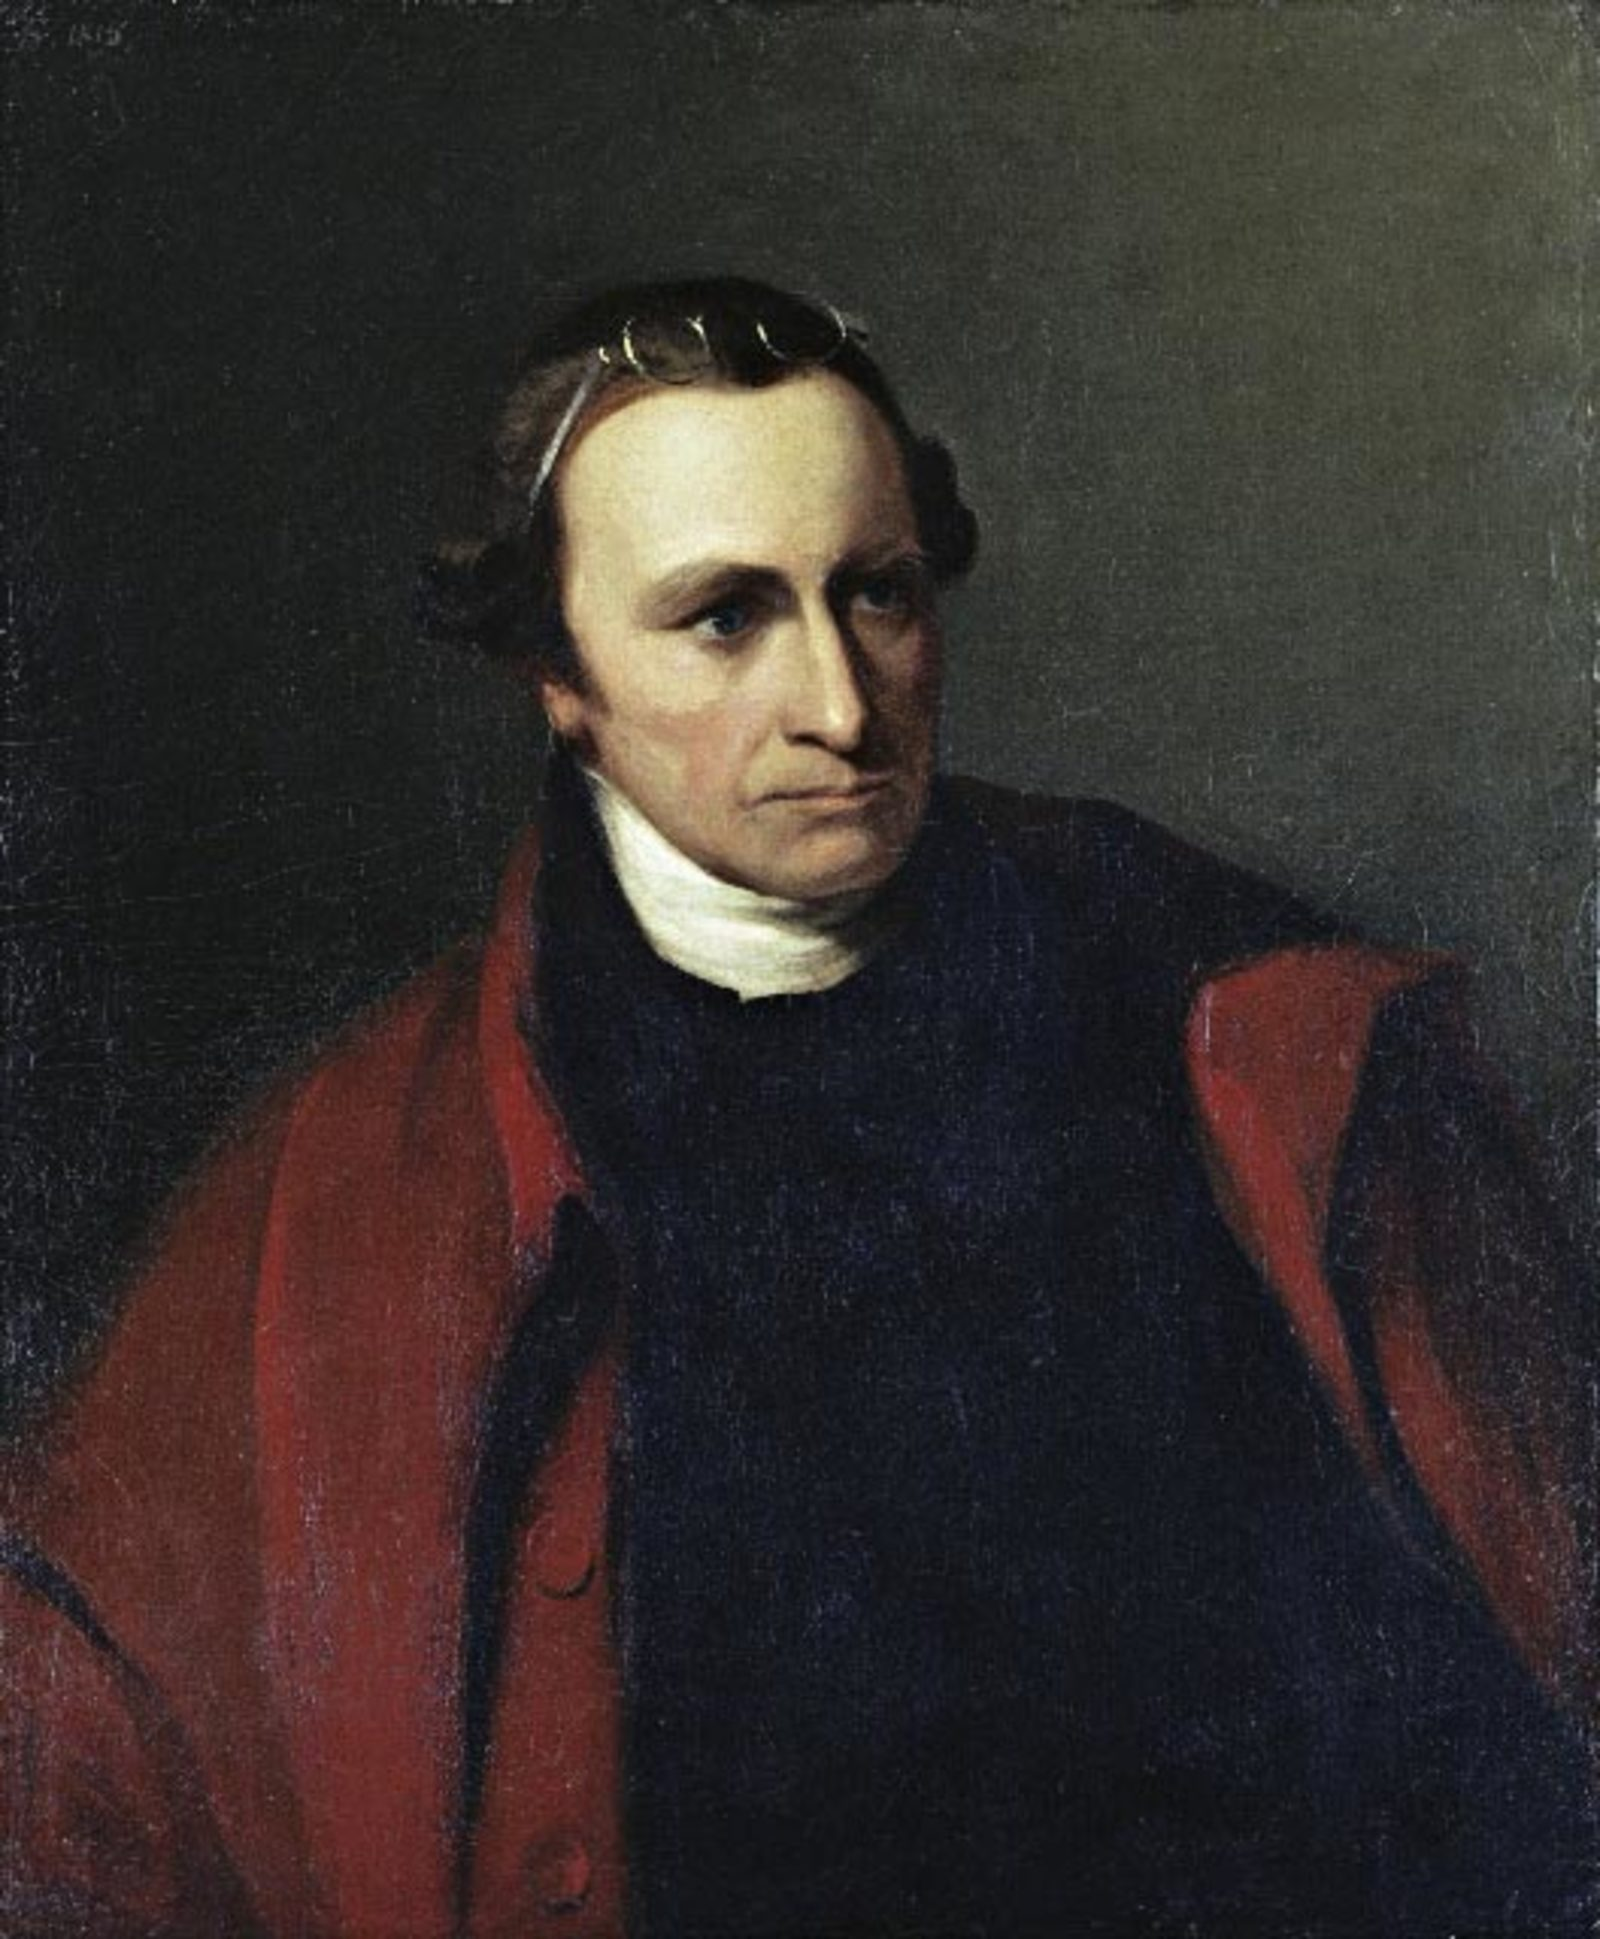 Patrick Henry and a Man's story of letting go. #heatherearles #herbnwisdom #naturalliving #libertyfirst #author #memorialday #patriot #patrickhenry